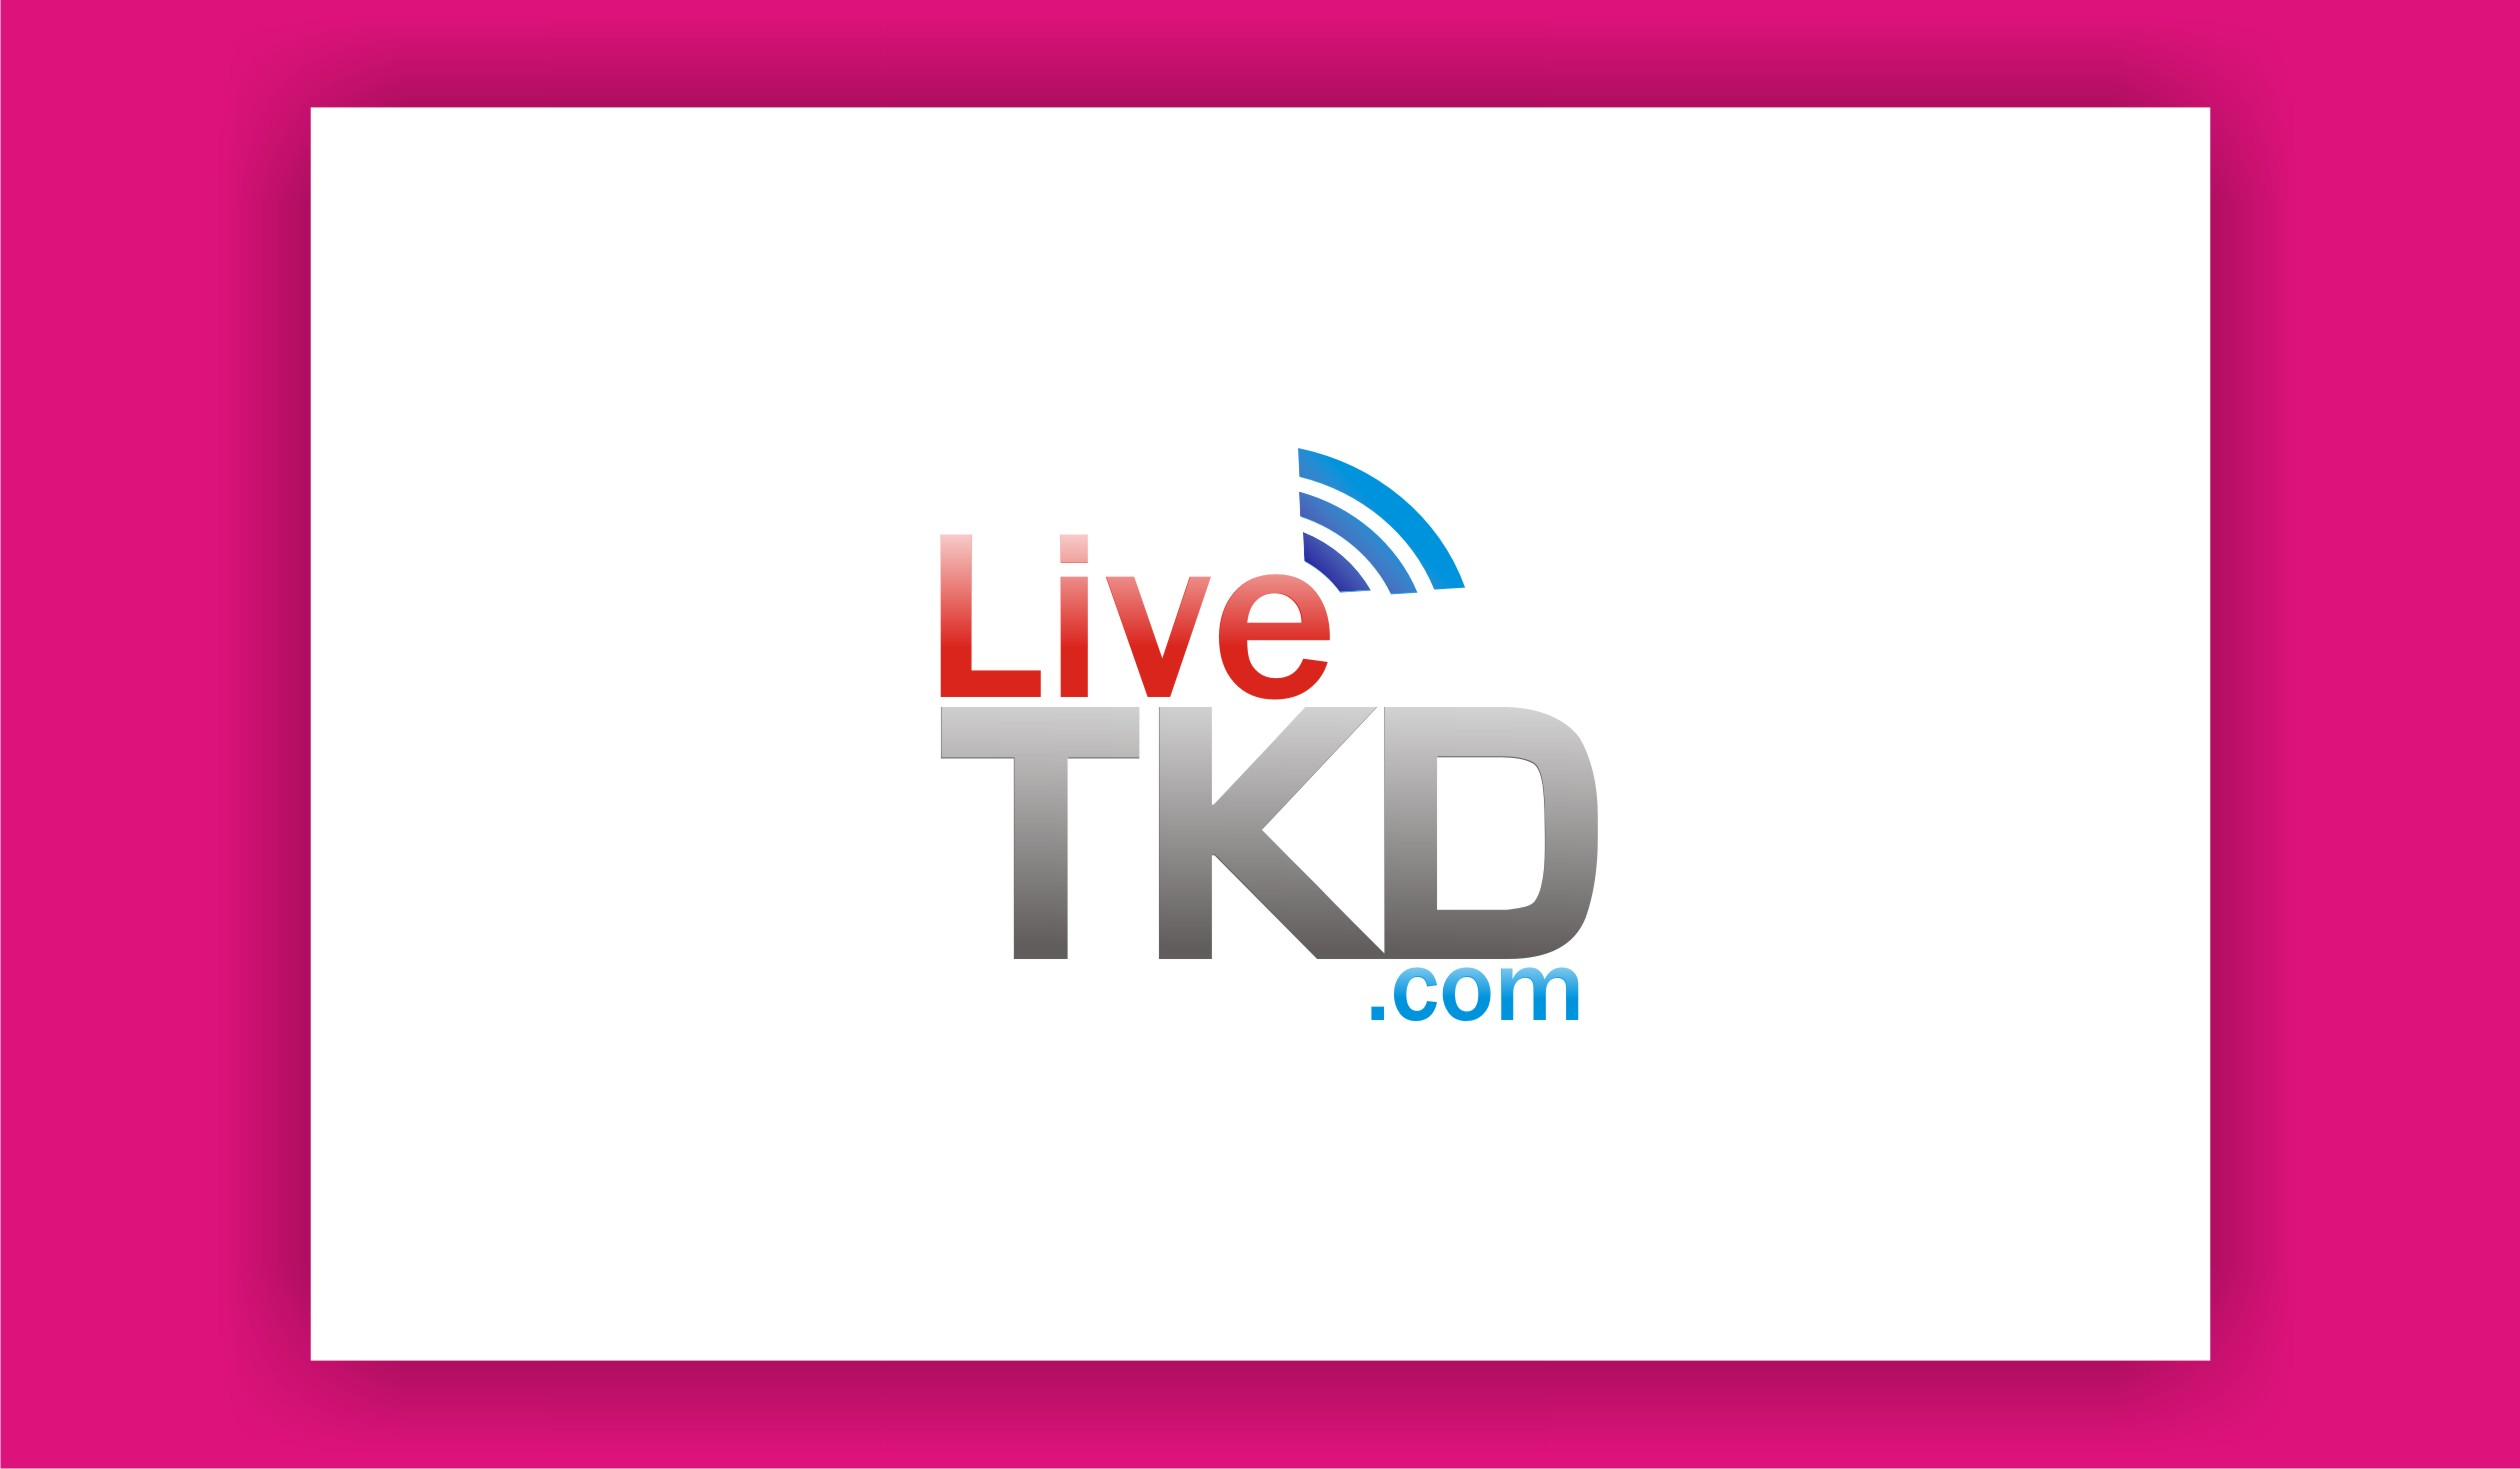 Logo Design by Shailender Kumar - Entry No. 144 in the Logo Design Contest New Logo Design for LiveTKD.com.